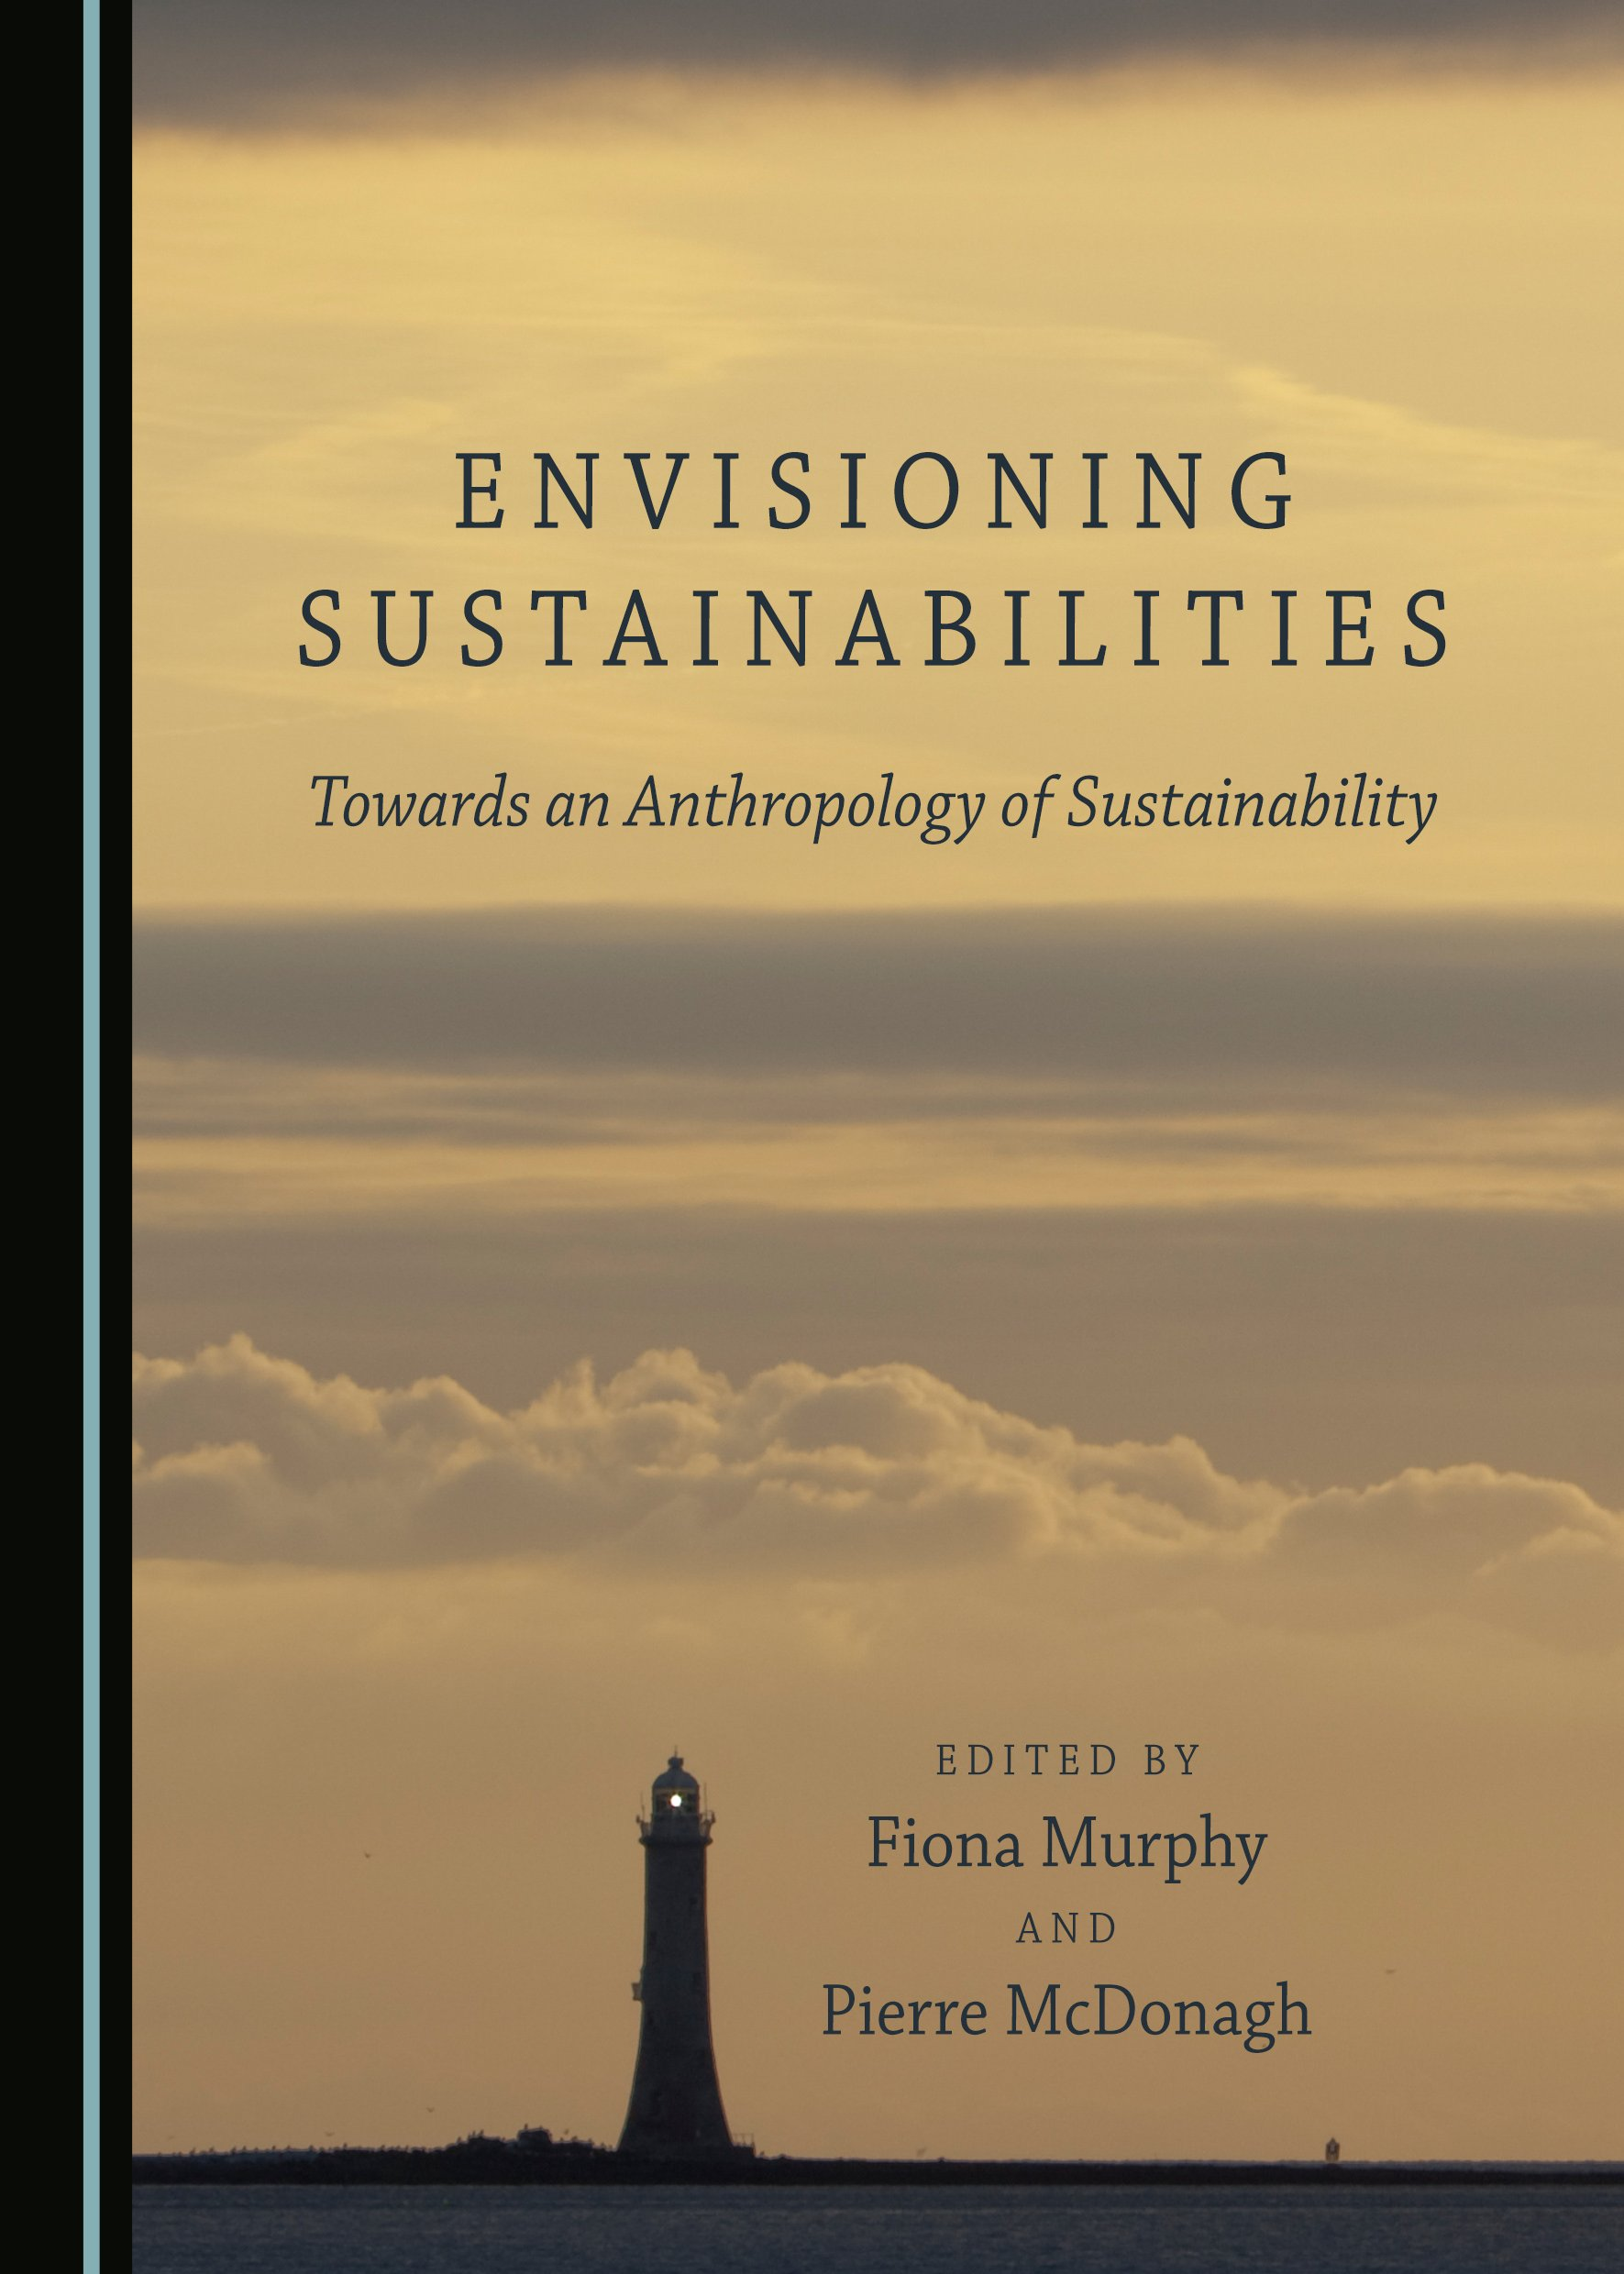 Envisioning Sustainabilities: Towards an Anthropology of Sustainability